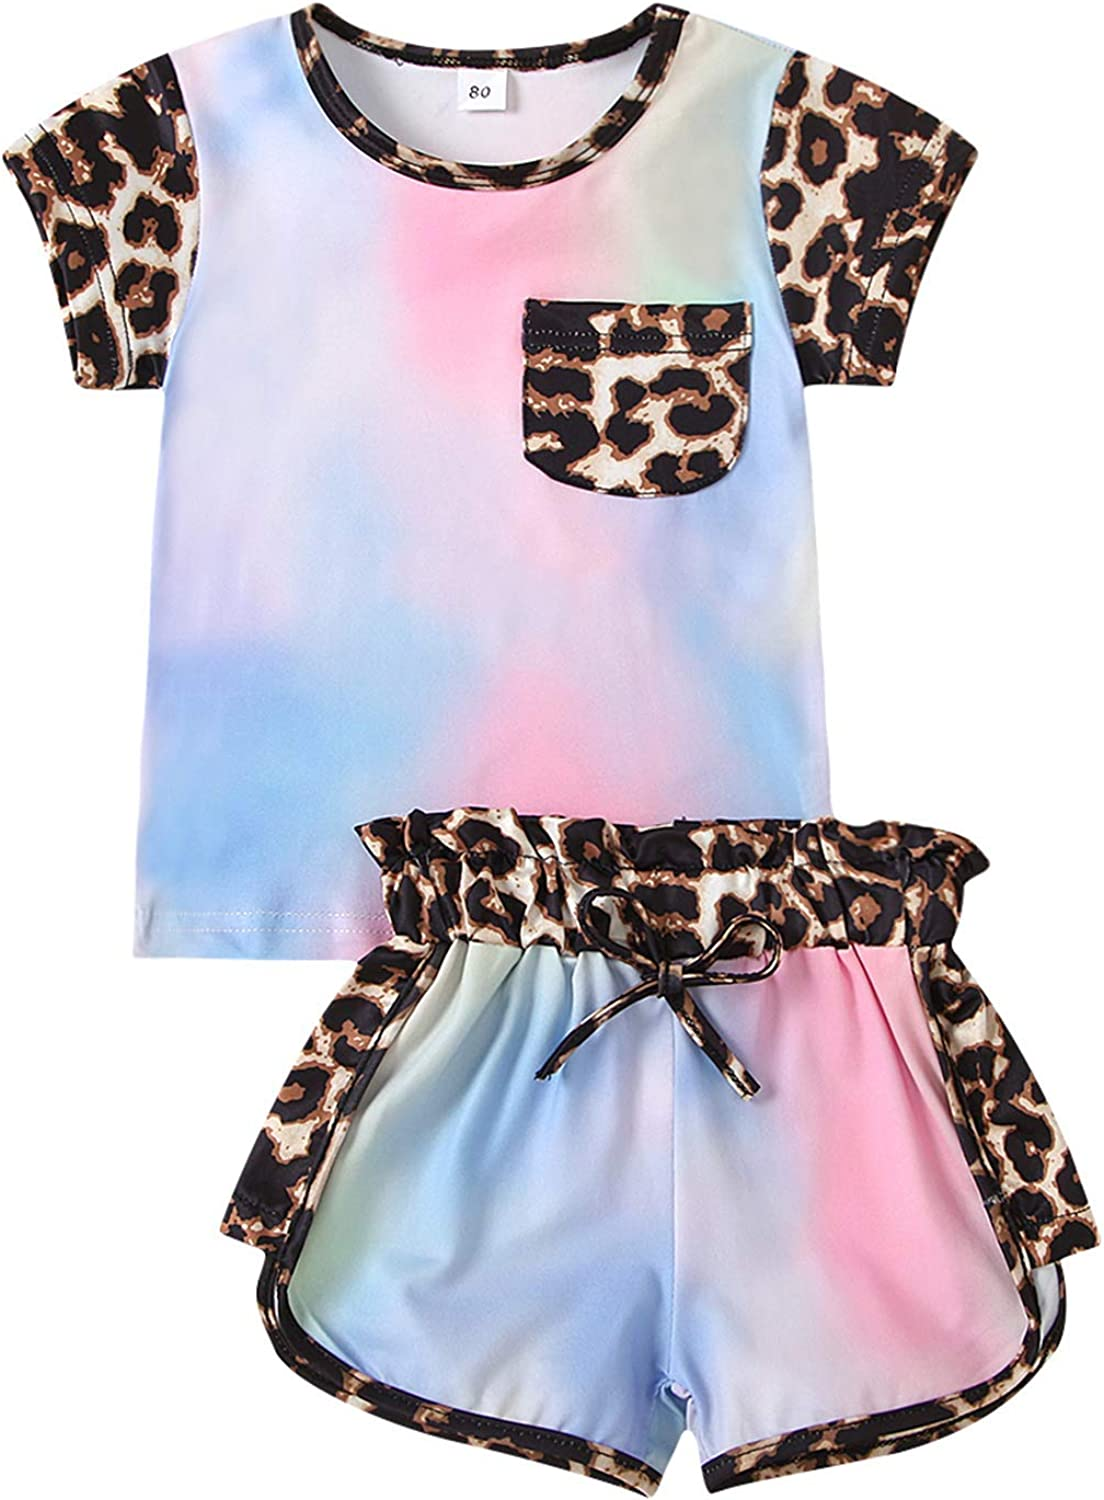 Nie Cuimeiwan Outstanding mart Toddler Baby Girl Sleeve Pri Short Leopard Clothes